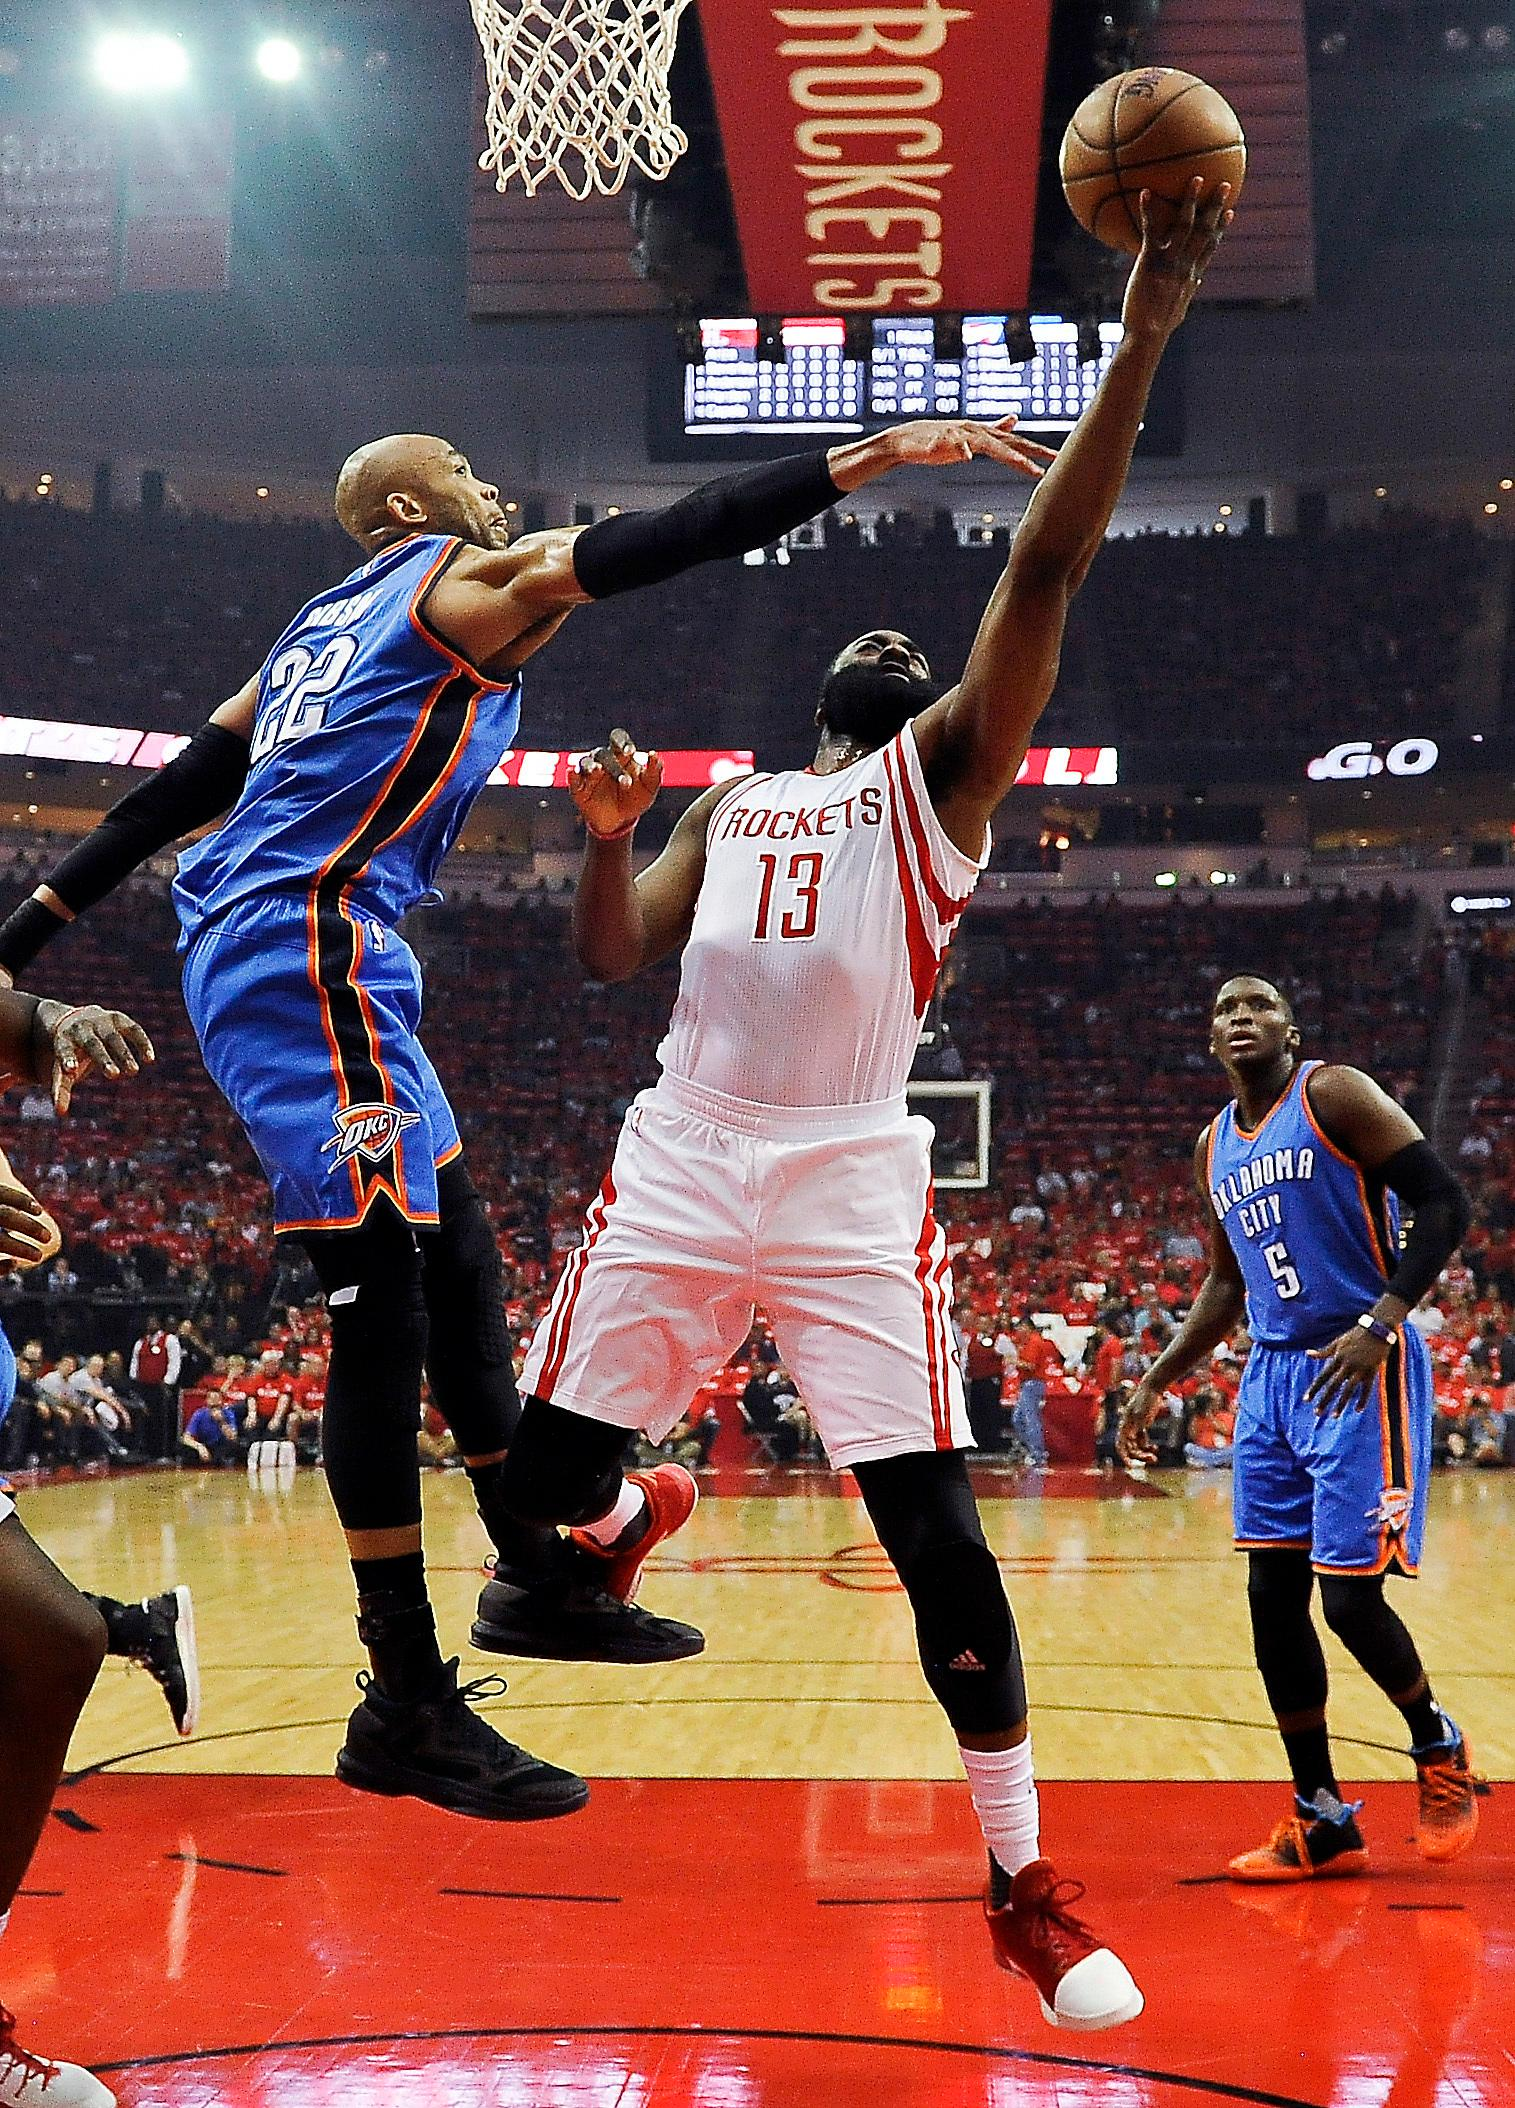 Houston Rockets guard James Harden (13) shoots as Oklahoma City Thunder forward Taj Gibson defends during the first half in Game 2 of an NBA basketball first-round playoff series, Wednesday, April 19, 2017, in Houston. (AP Photo/Eric Christian Smith)